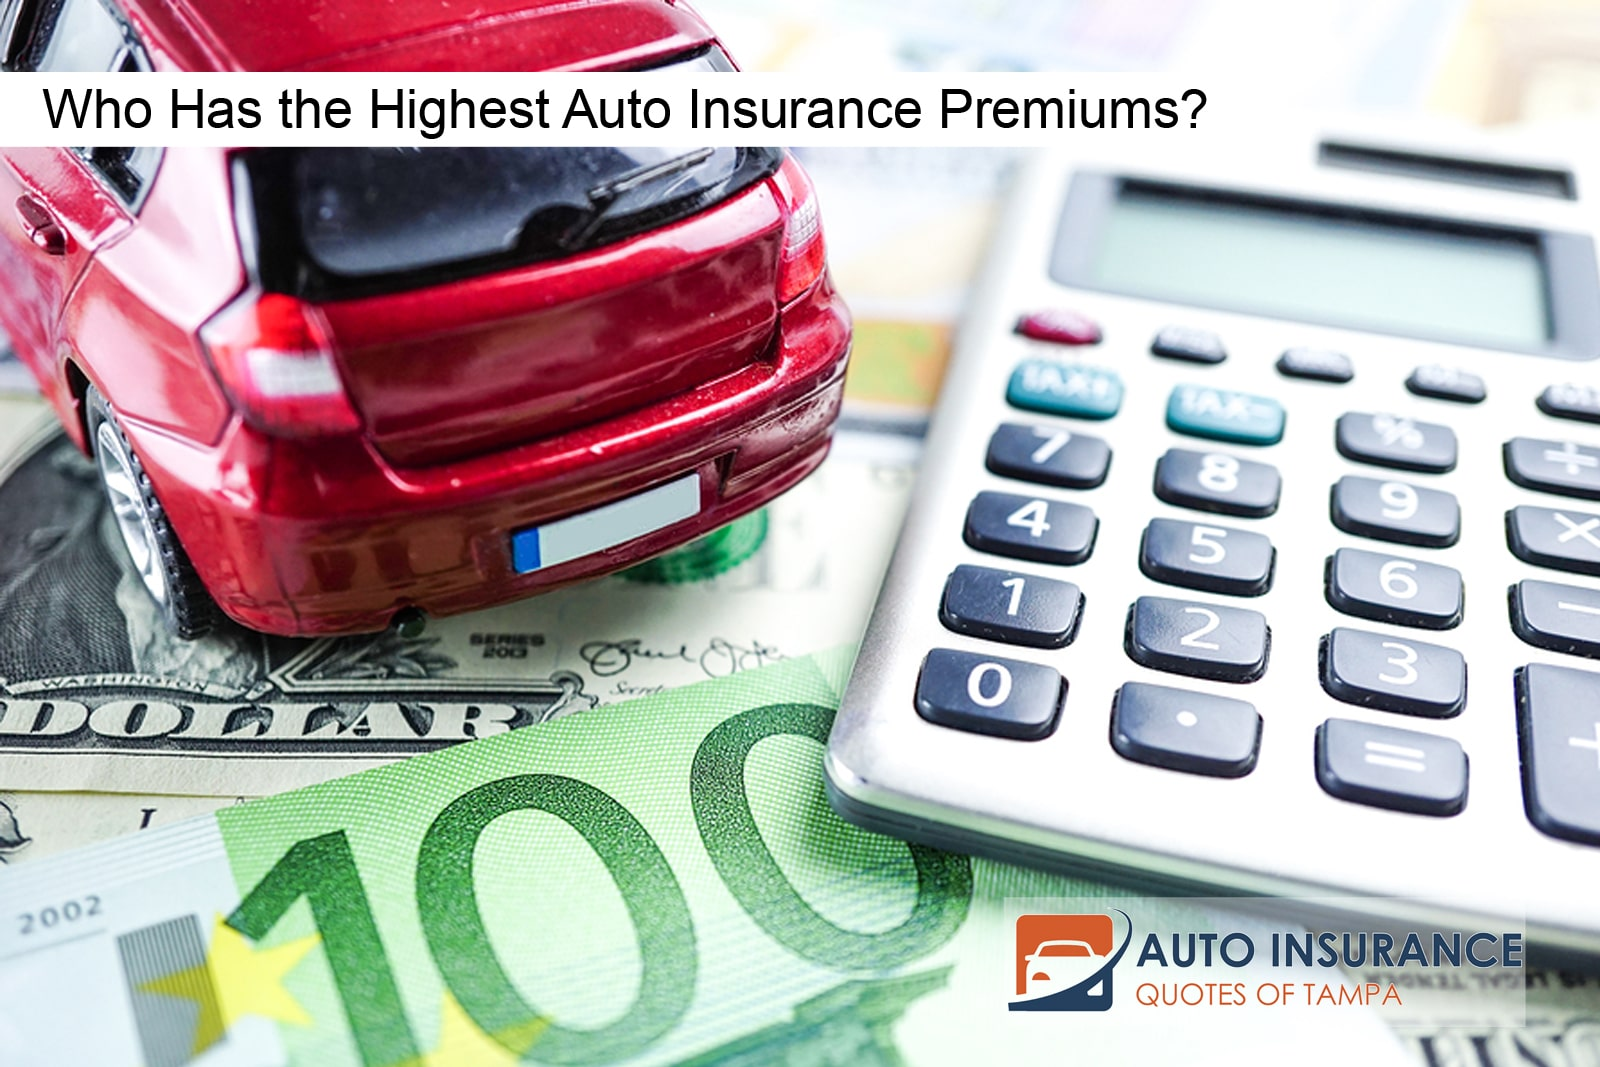 Who Has the Highest Auto Insurance Premiums?